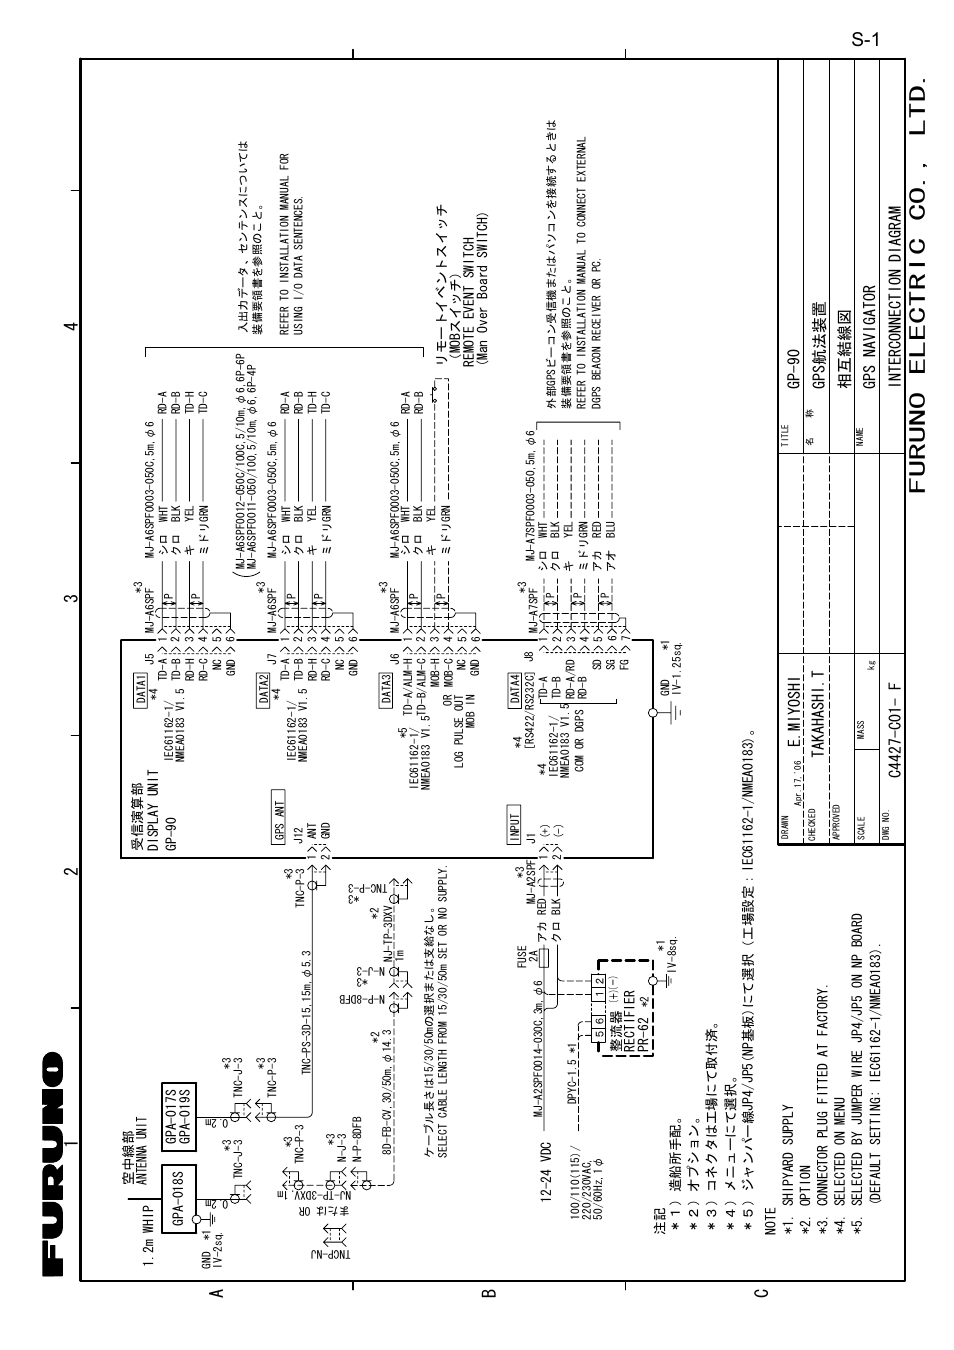 interconnection diagram  furuno electric co   ltd  1a 34 b c 2